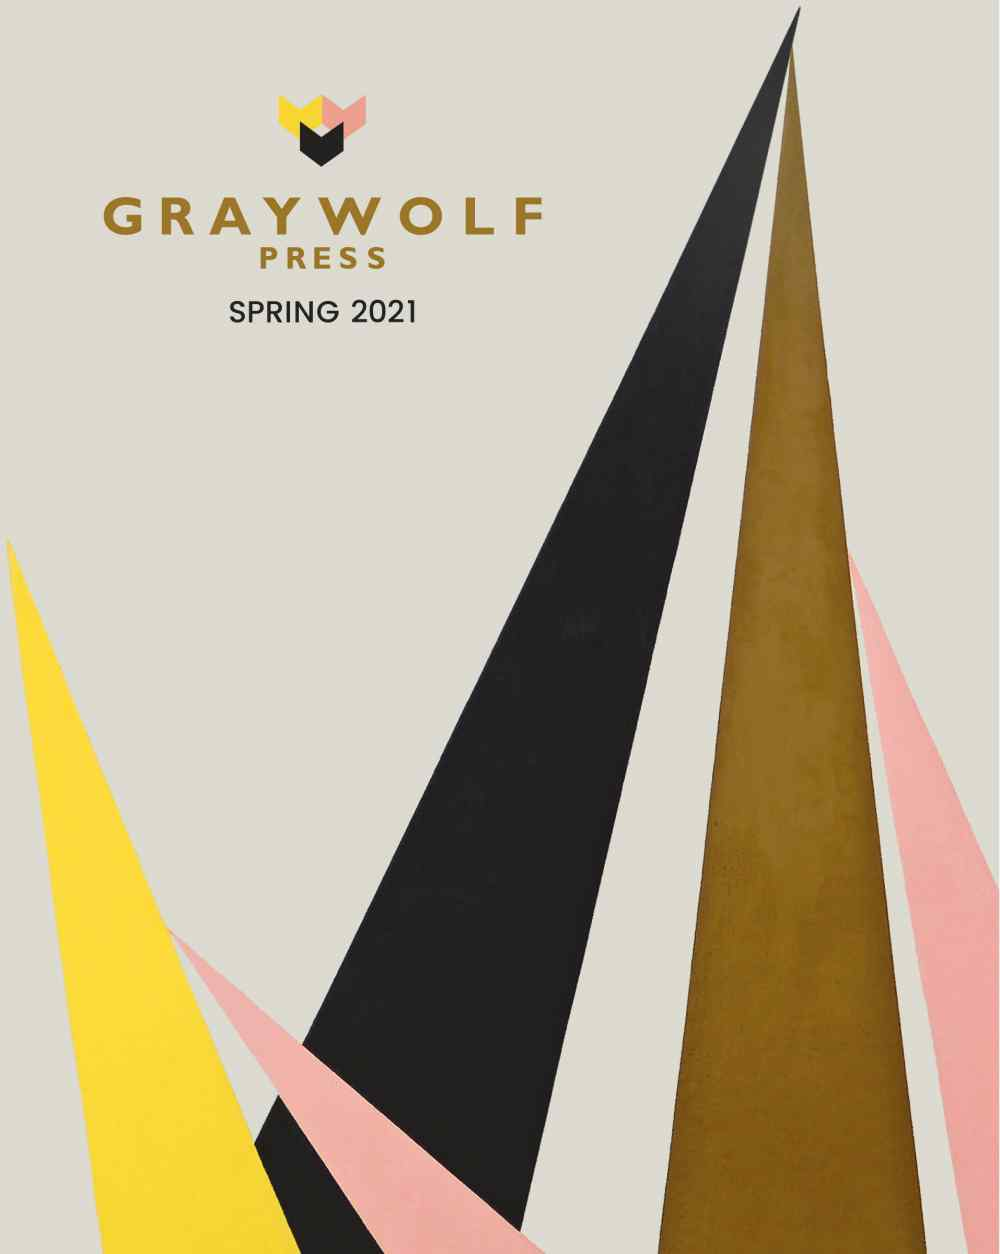 Graywolf Spring 2021 Catalog Cover